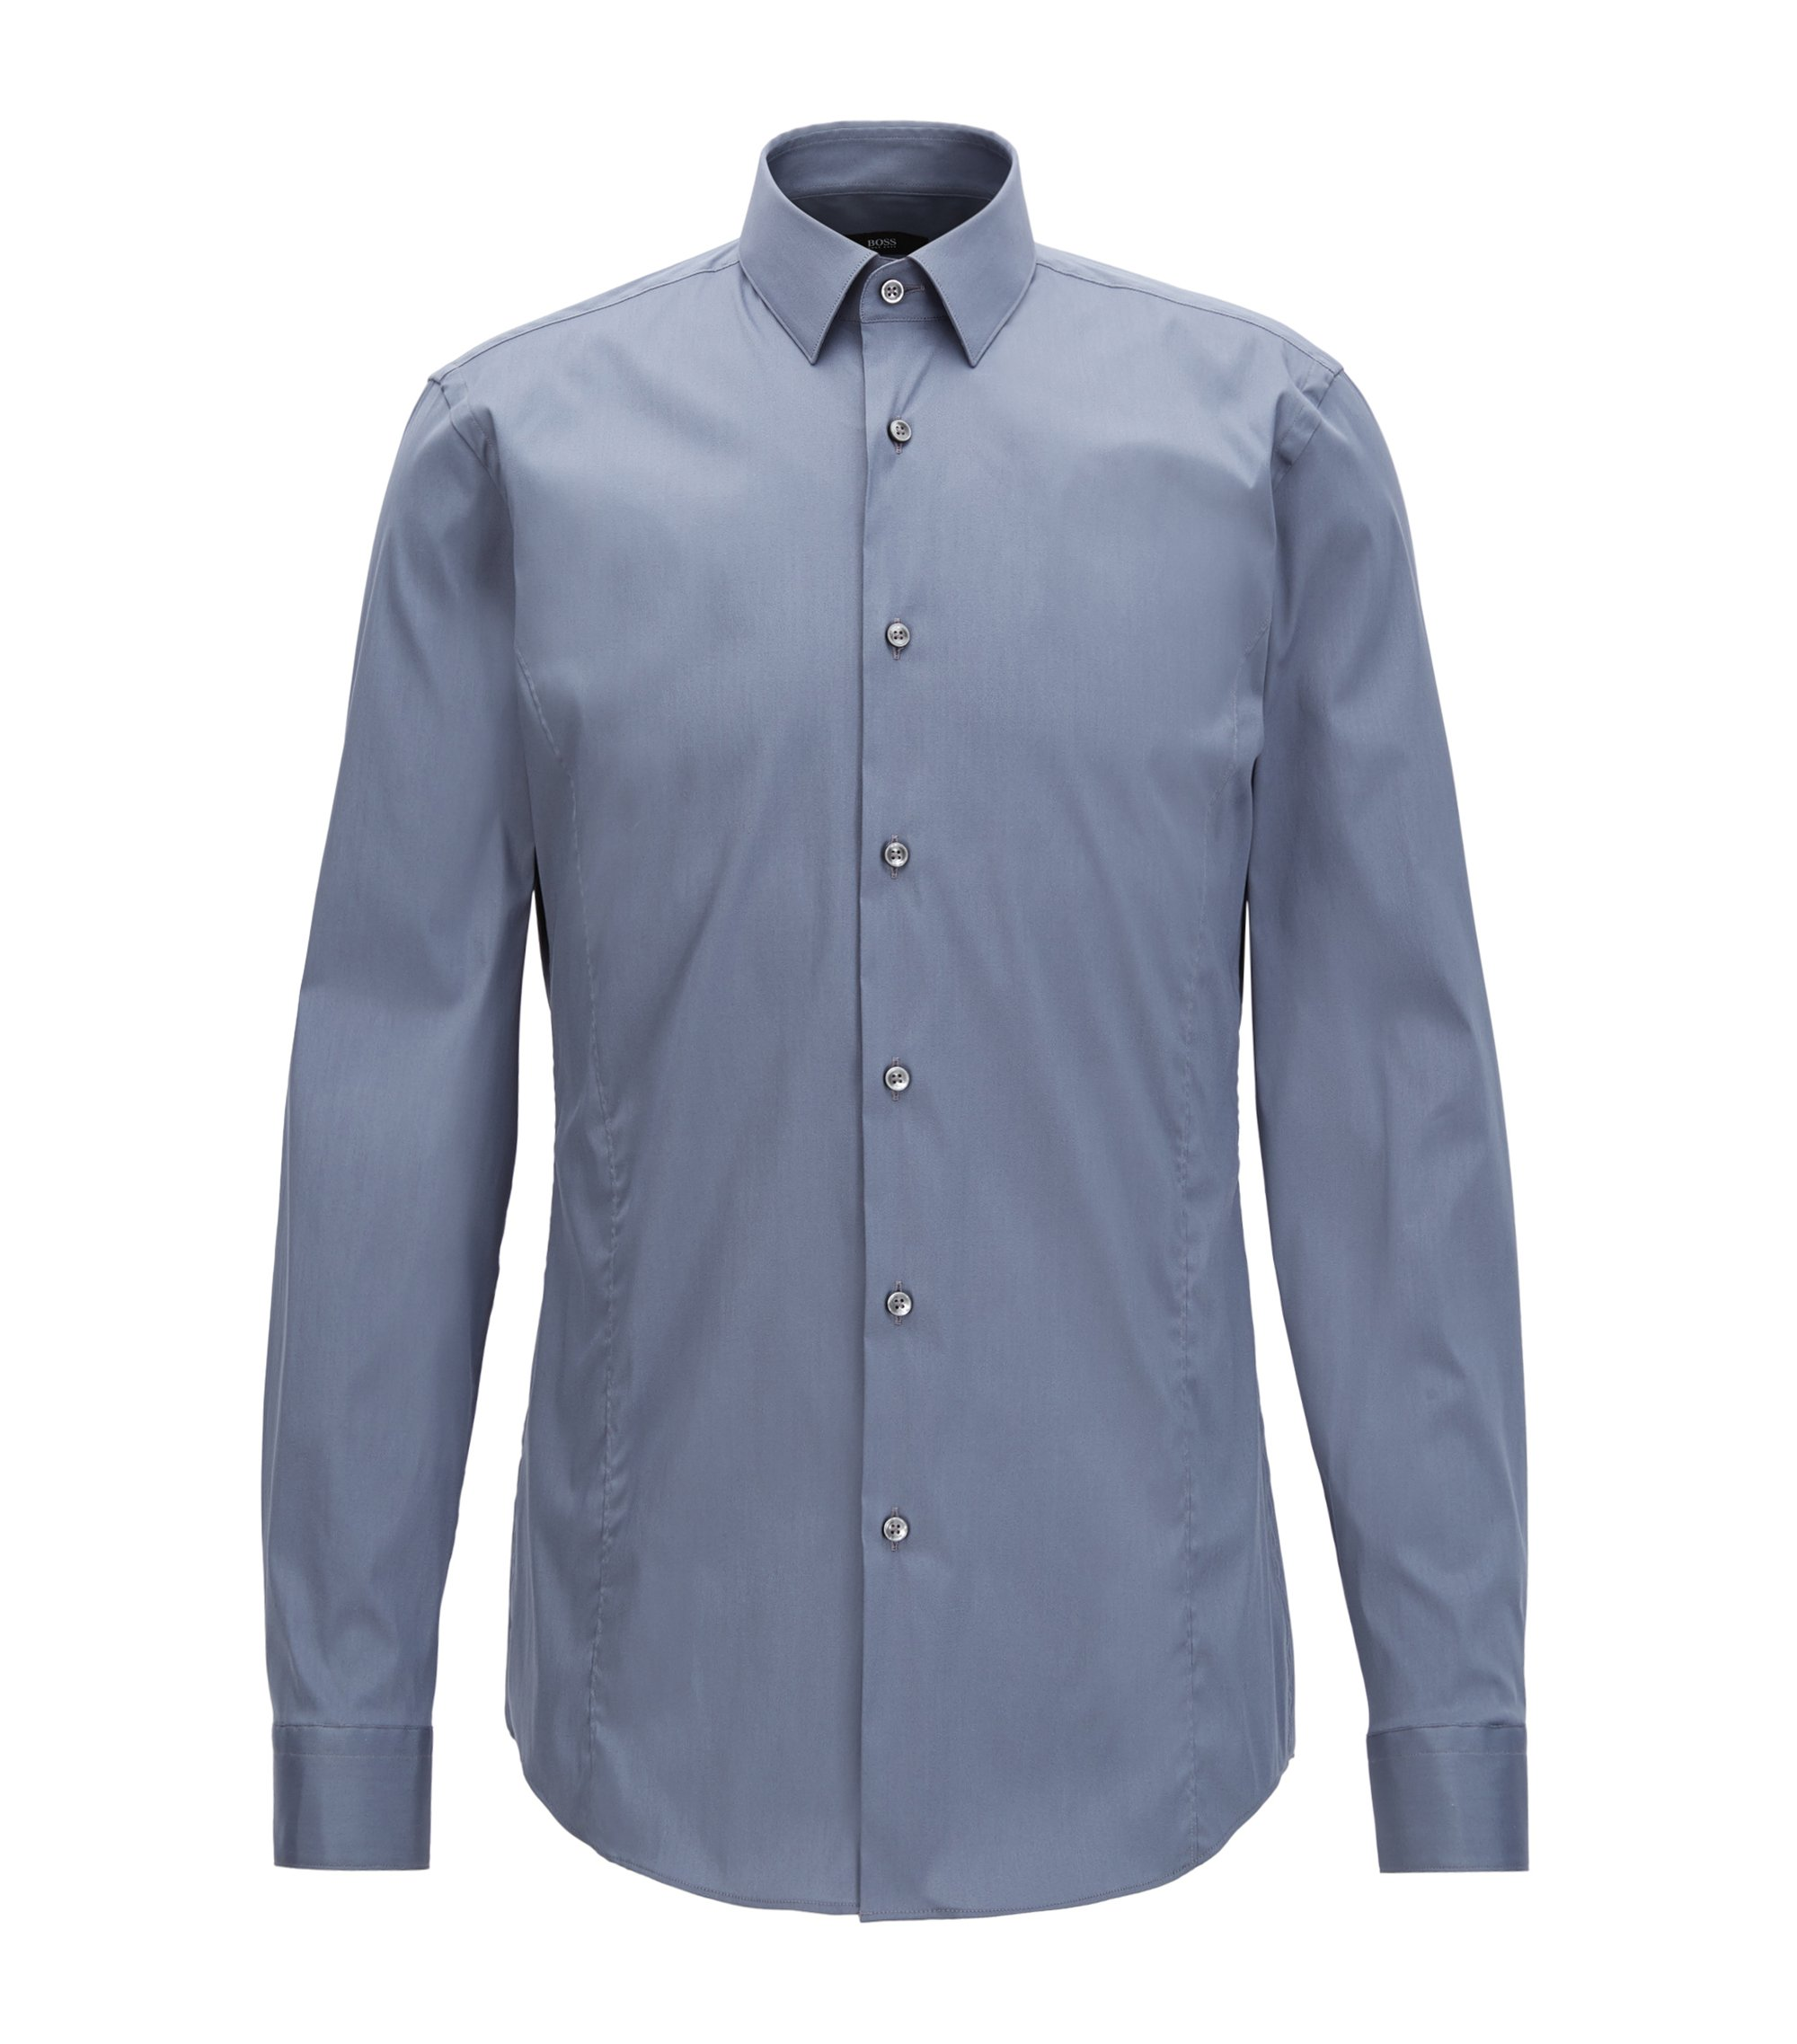 Cotton Blend Shirt, Slim Fit | Ilan, Dark Grey